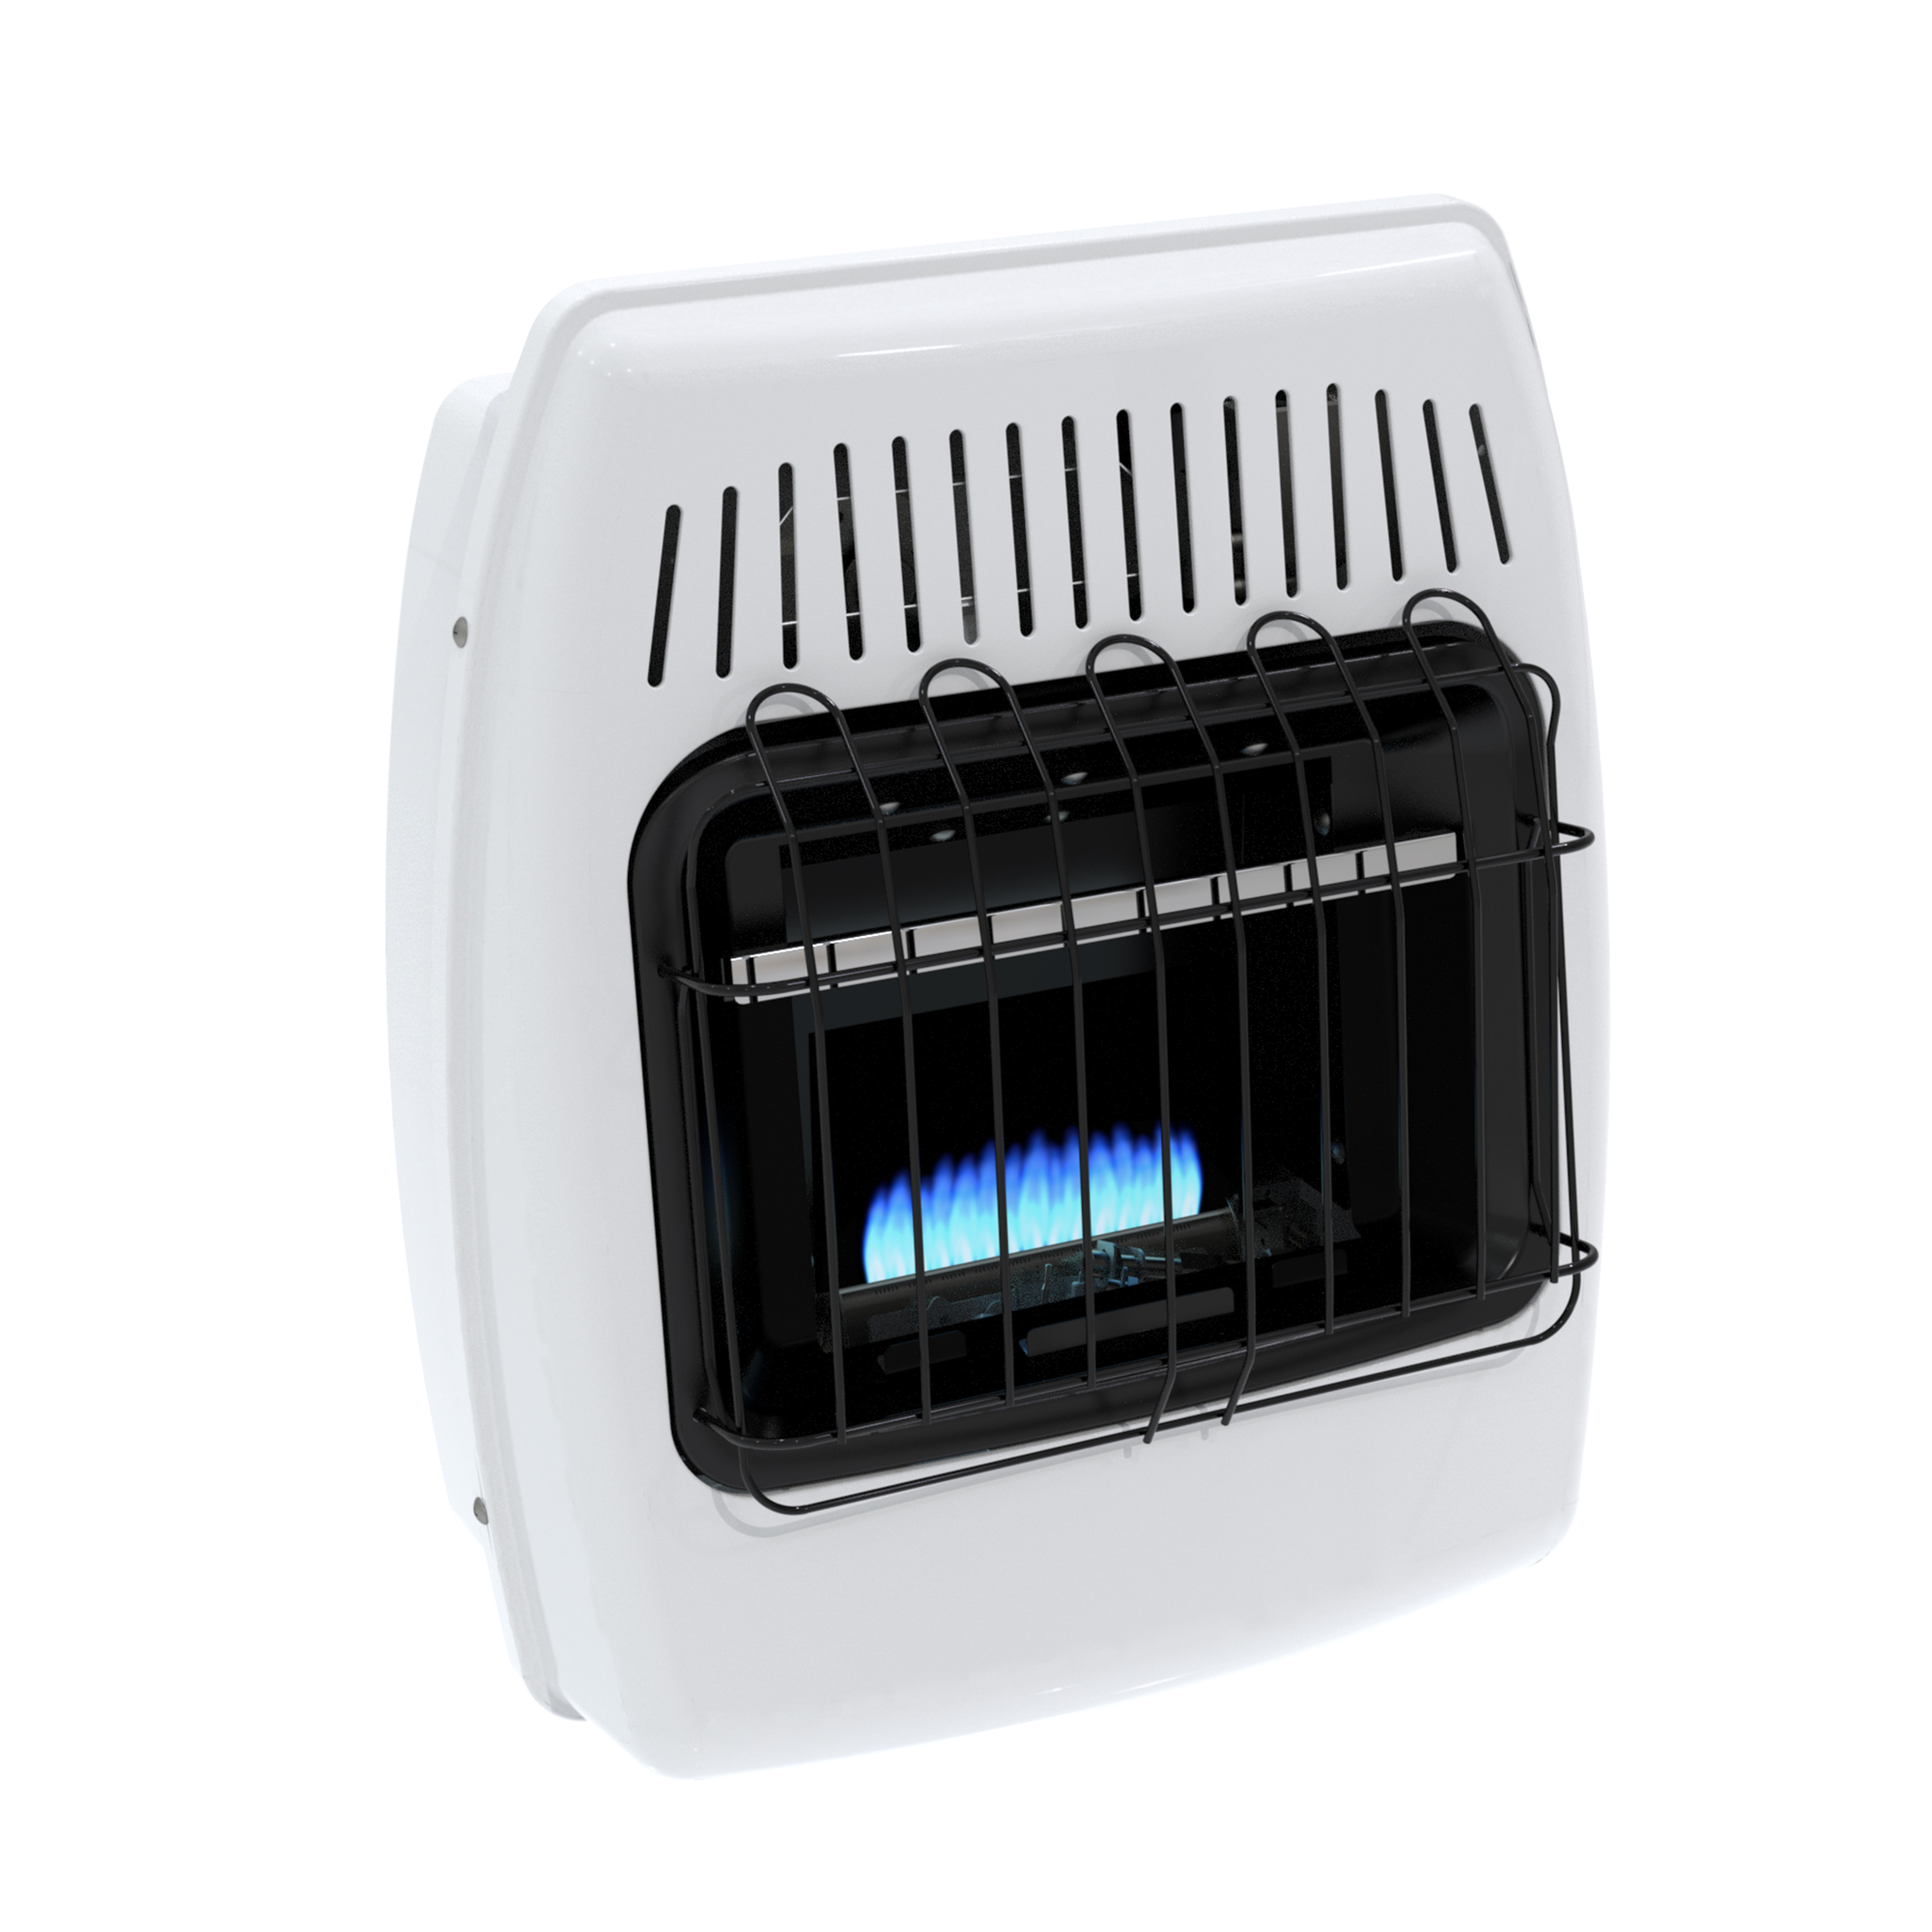 Dyna-Glo 10,000 BTU Natural Gas Blue Flame Vent Free Wall Heater